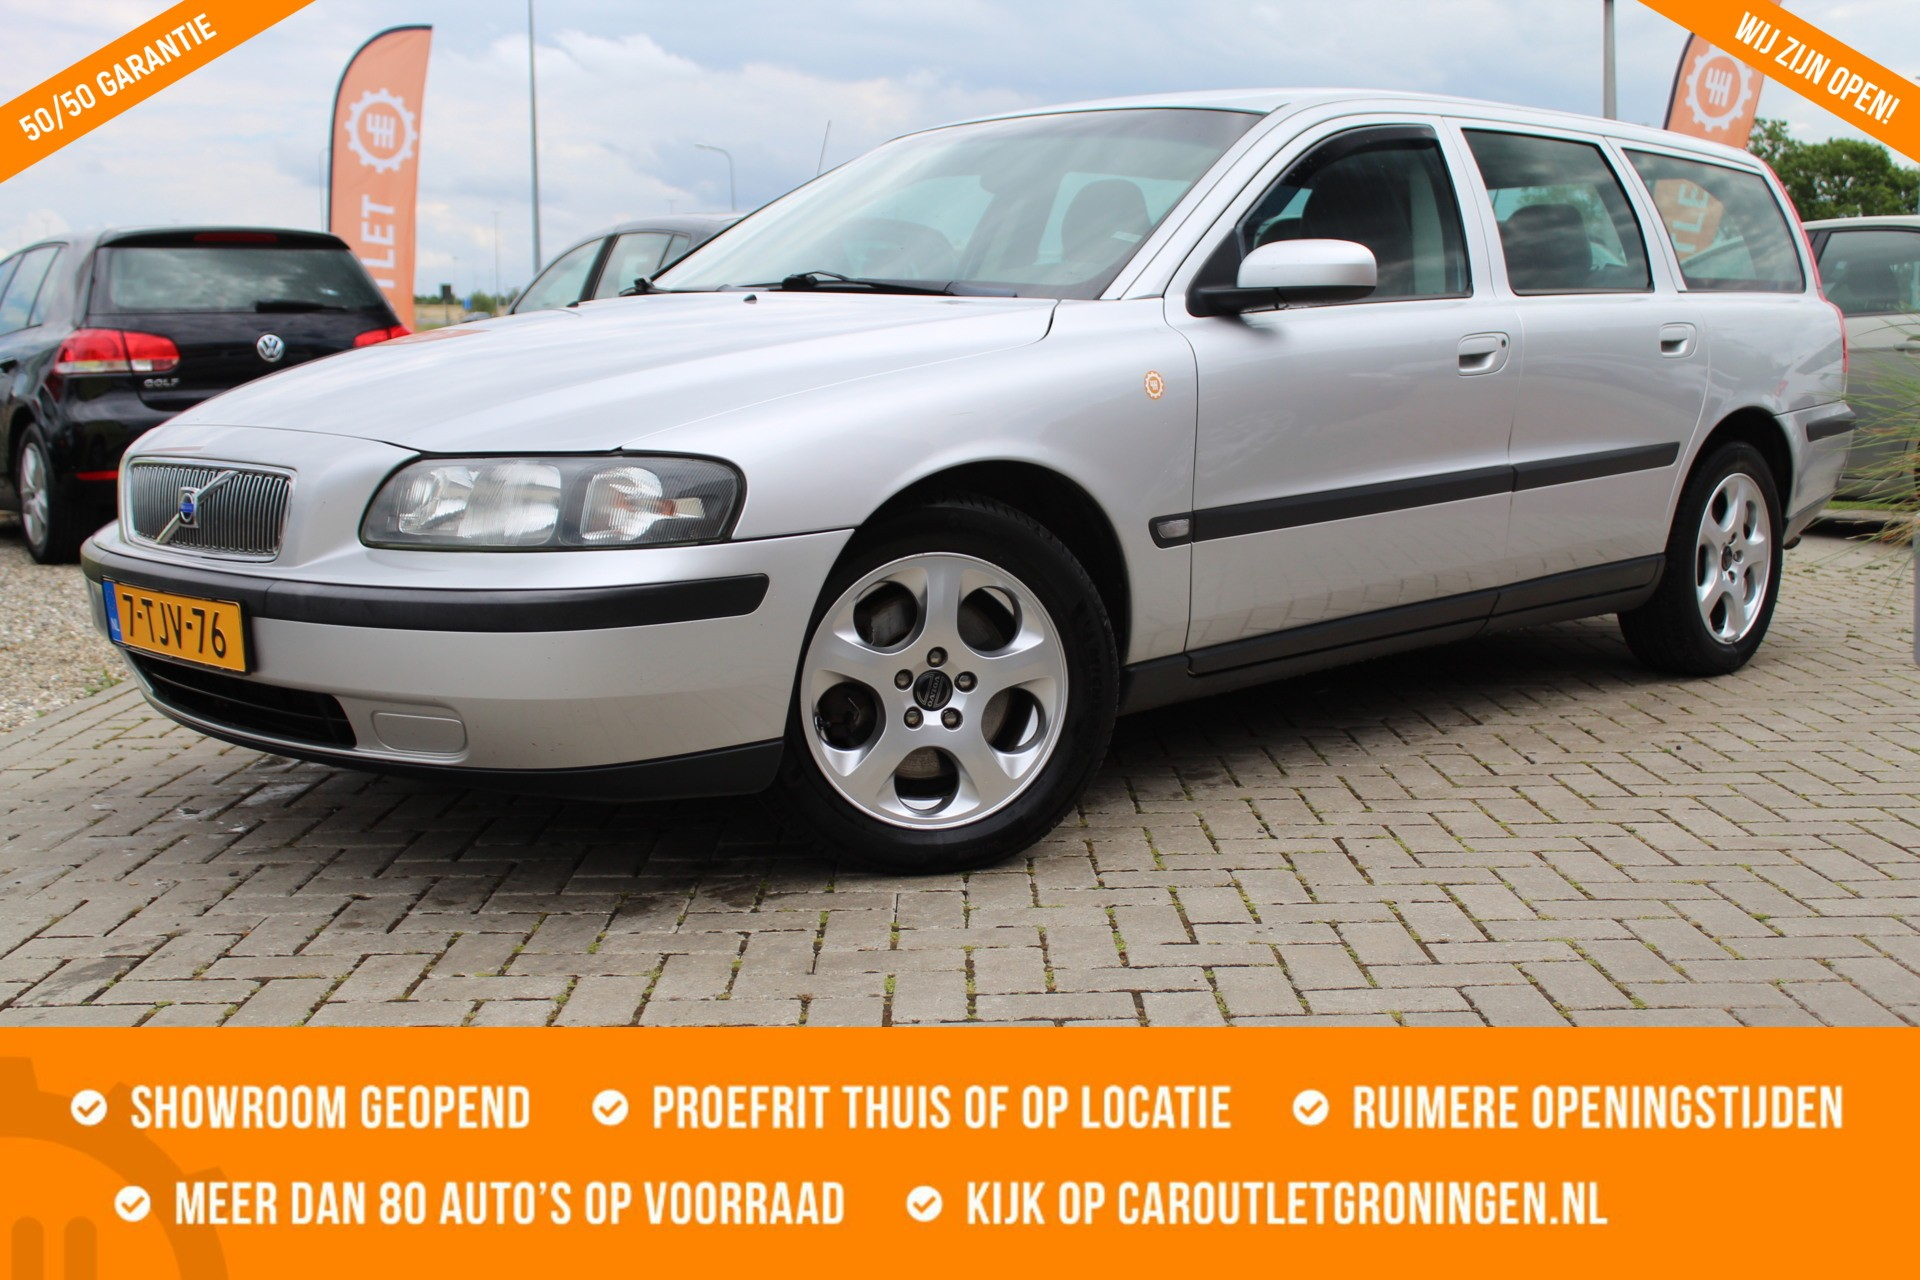 Caroutlet Groningen - Volvo V70 2.4 D5 Geartronic   AIRCO   TOPSTAAT   NW APK